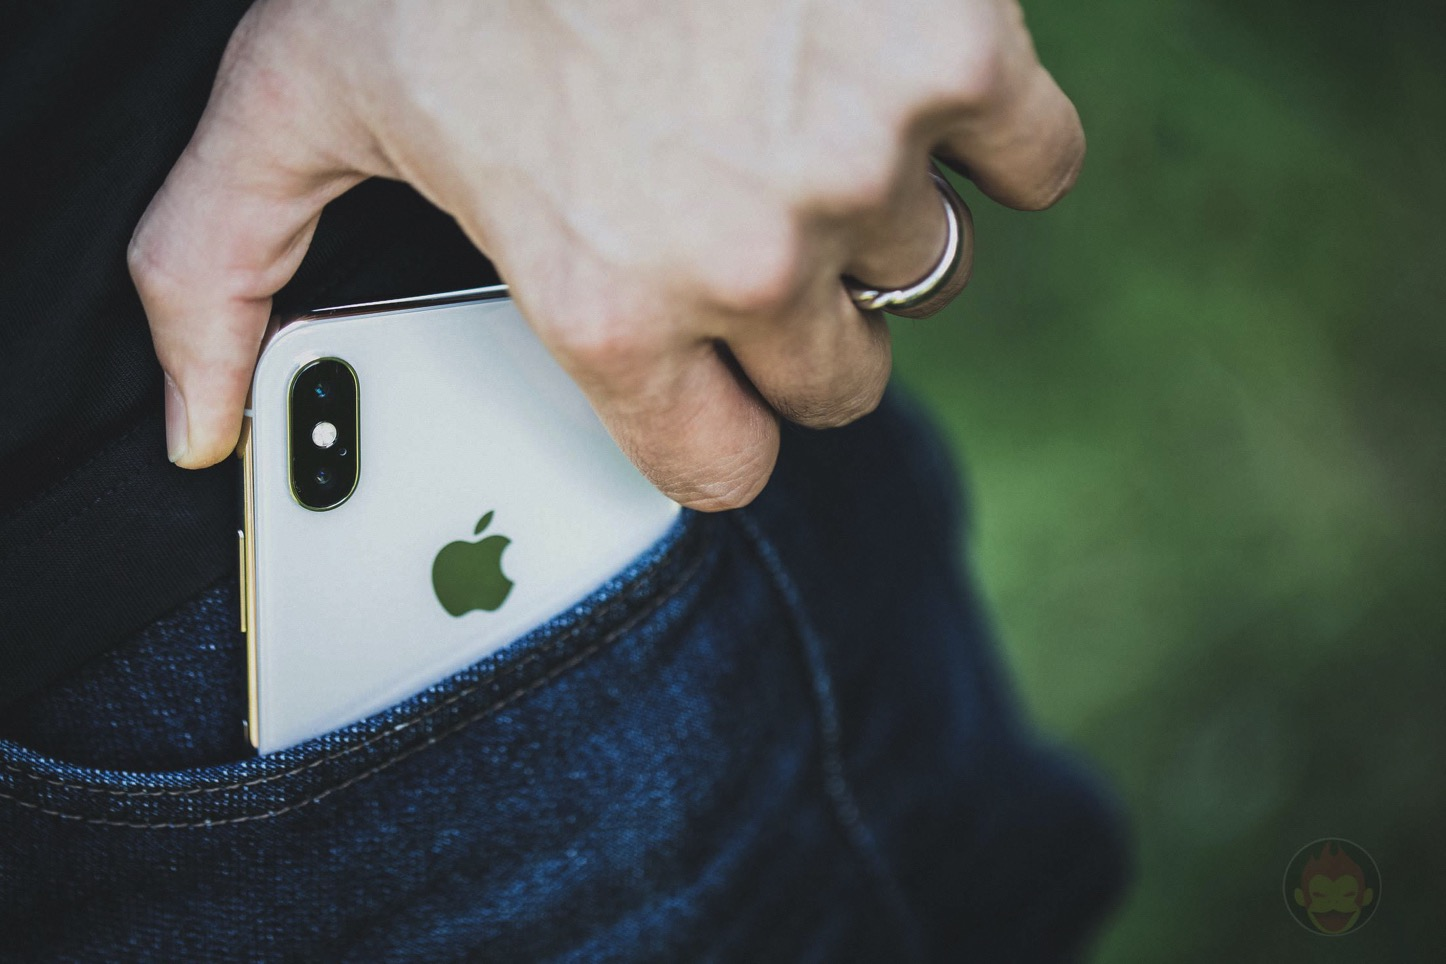 IPhoneX Taking Out of Pocket 02